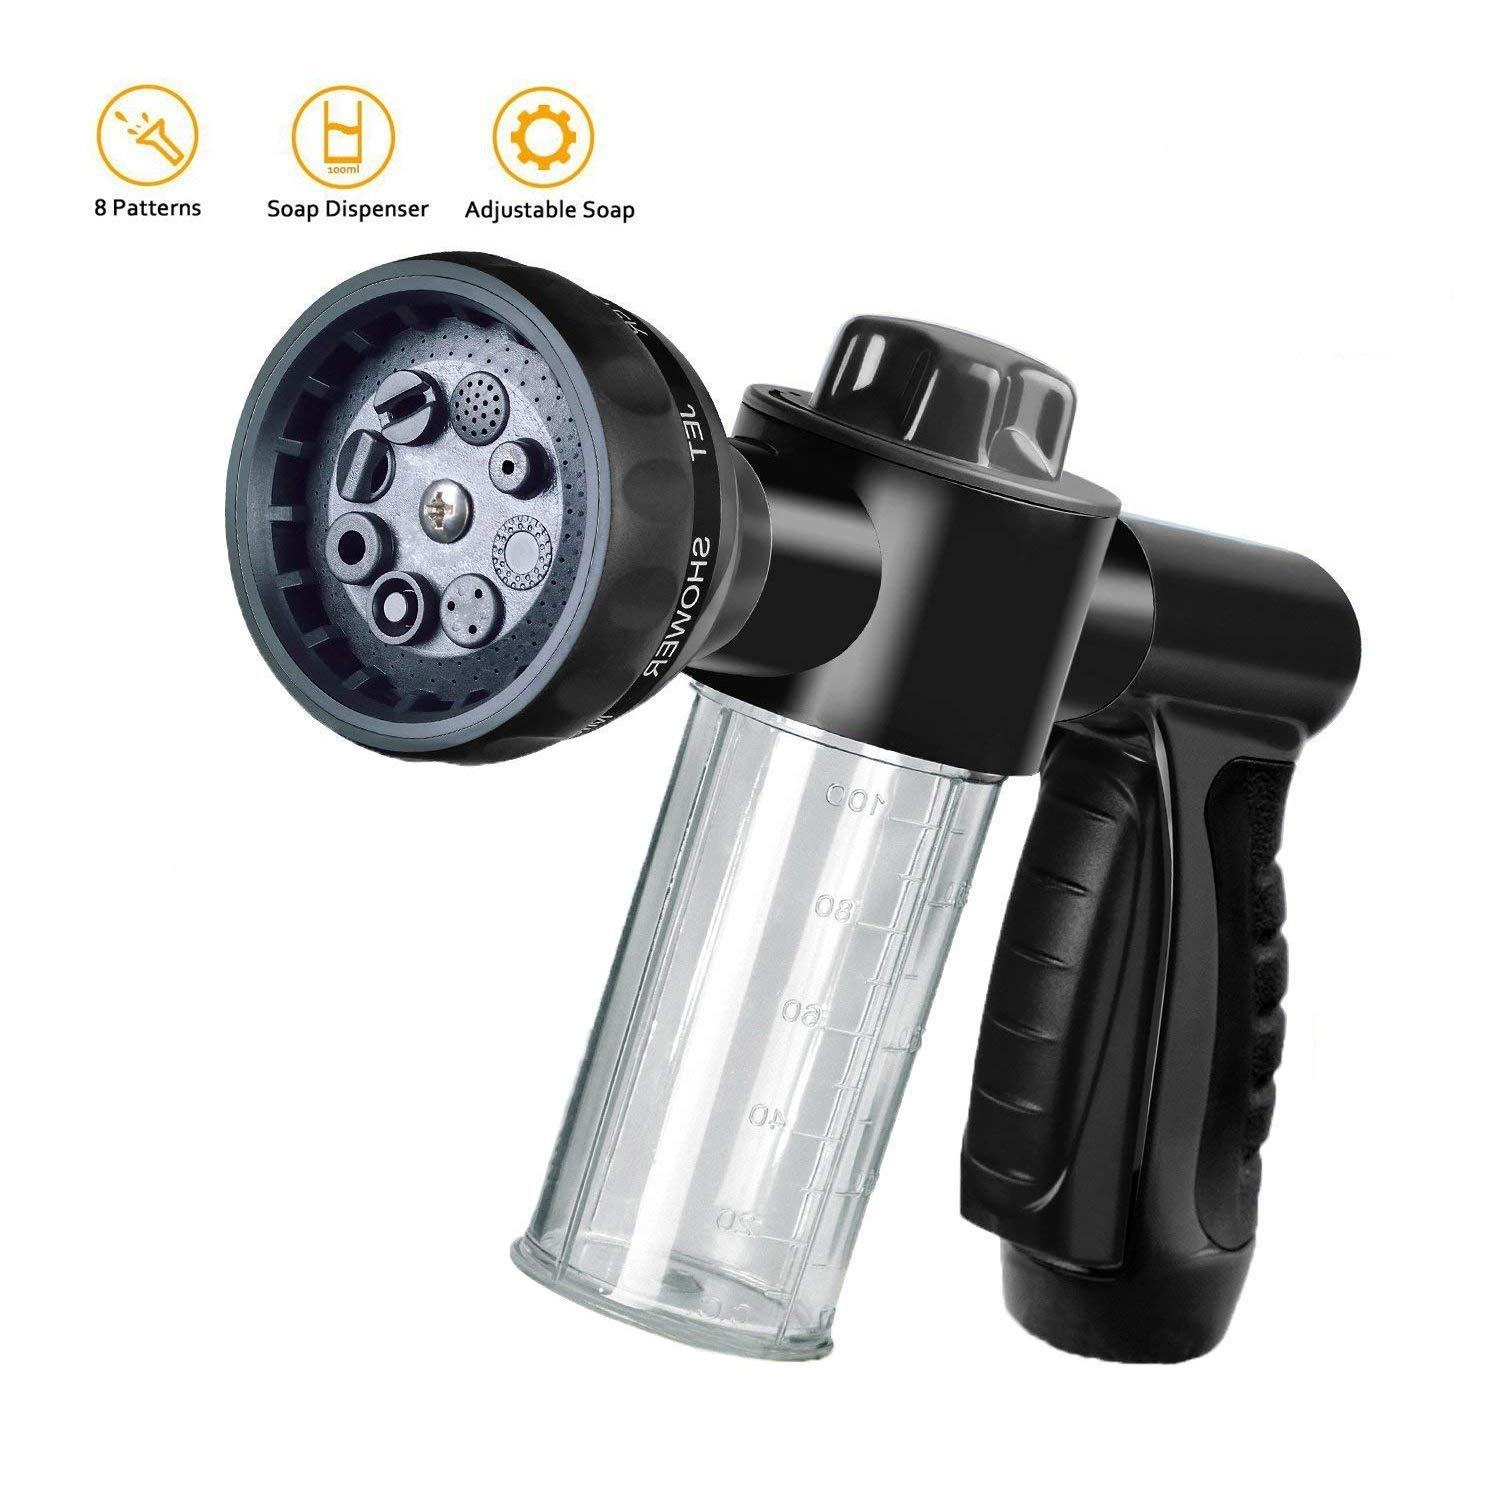 Garden Hose Nozzle Adjustable Hose Spray Nozzle High Pressure 8 Watering Pattern with 3.5Oz Soap Sprayer Power Garden Water Hose Foam Nozzle Sprayer for Car Washing Pet Shower (Black)